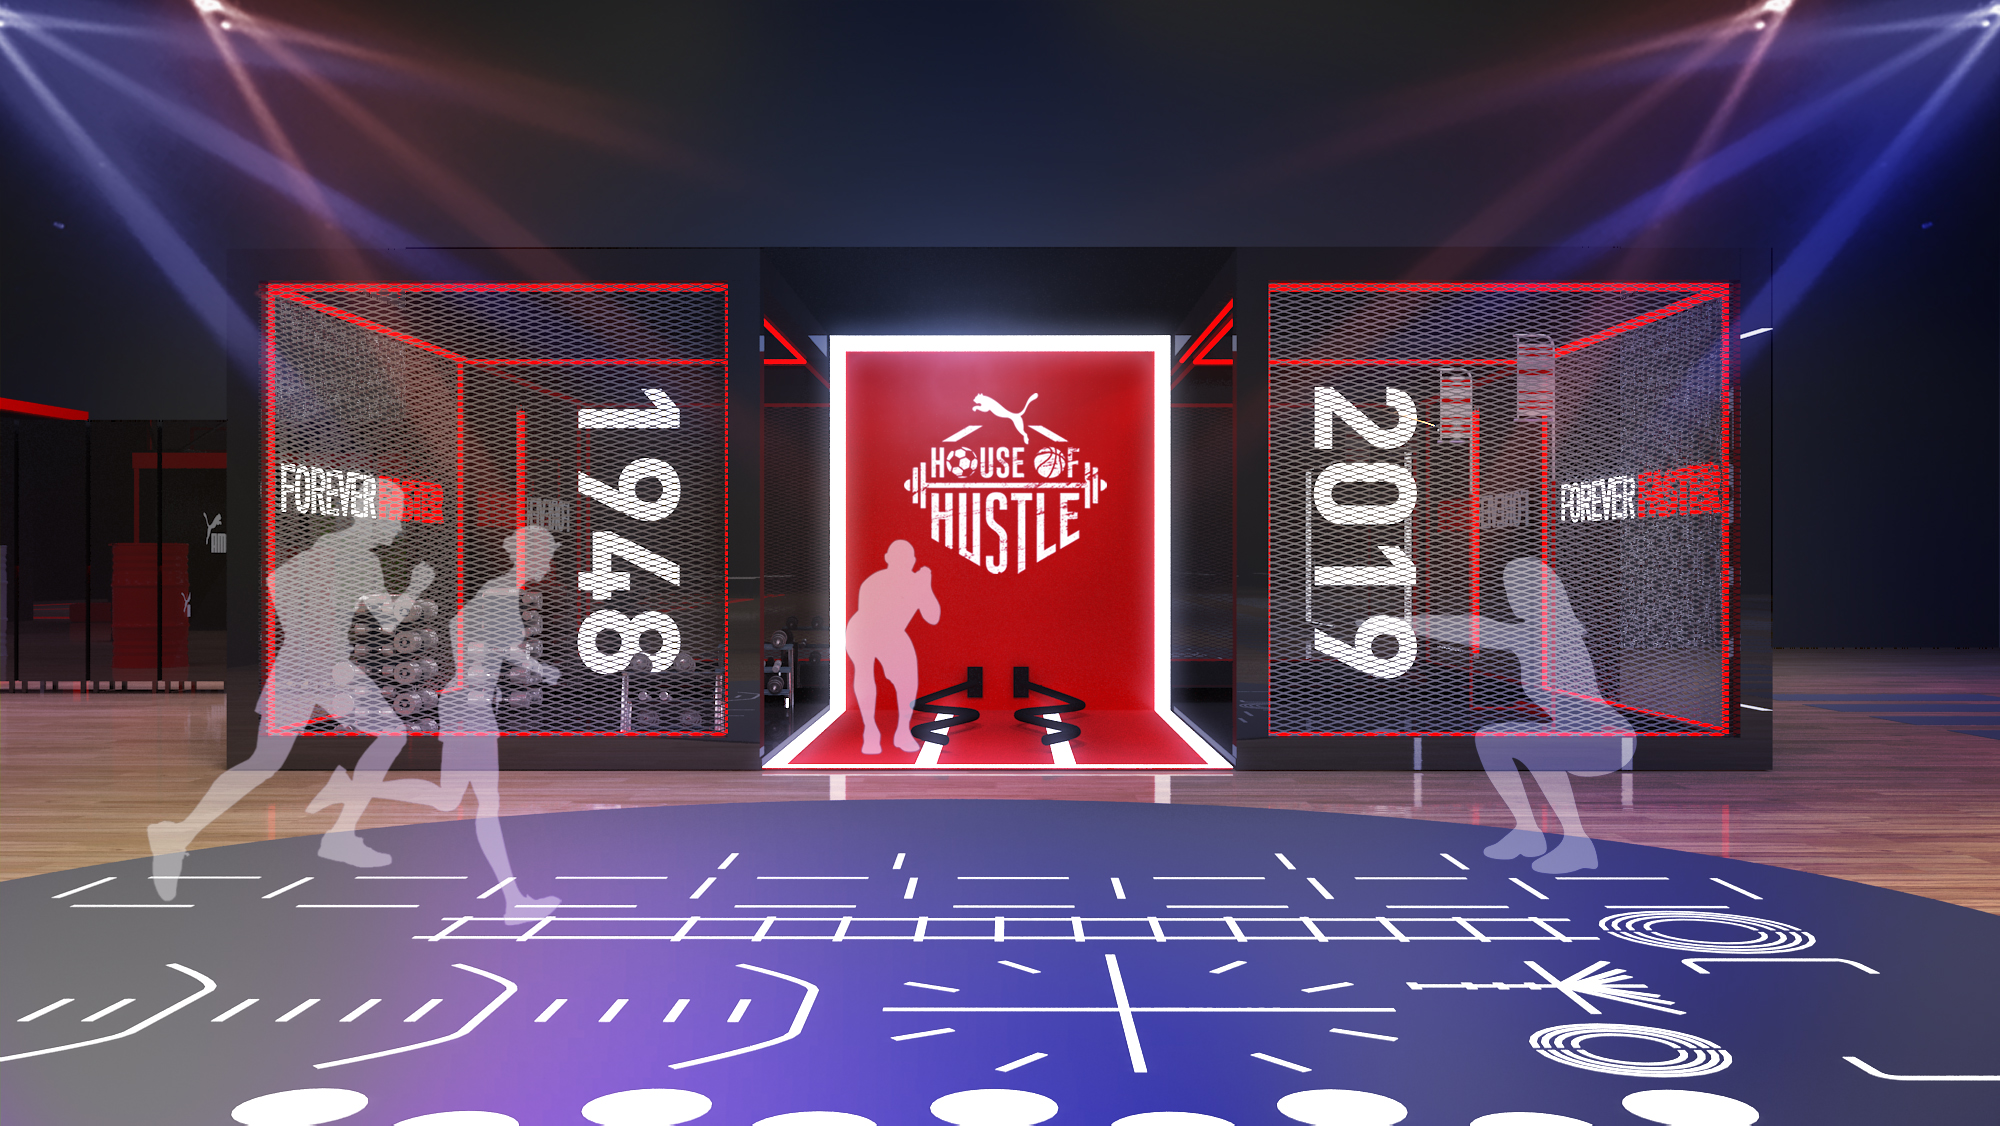 PUMA returns with House of Hustle, a first-of-its-kind performance event this October